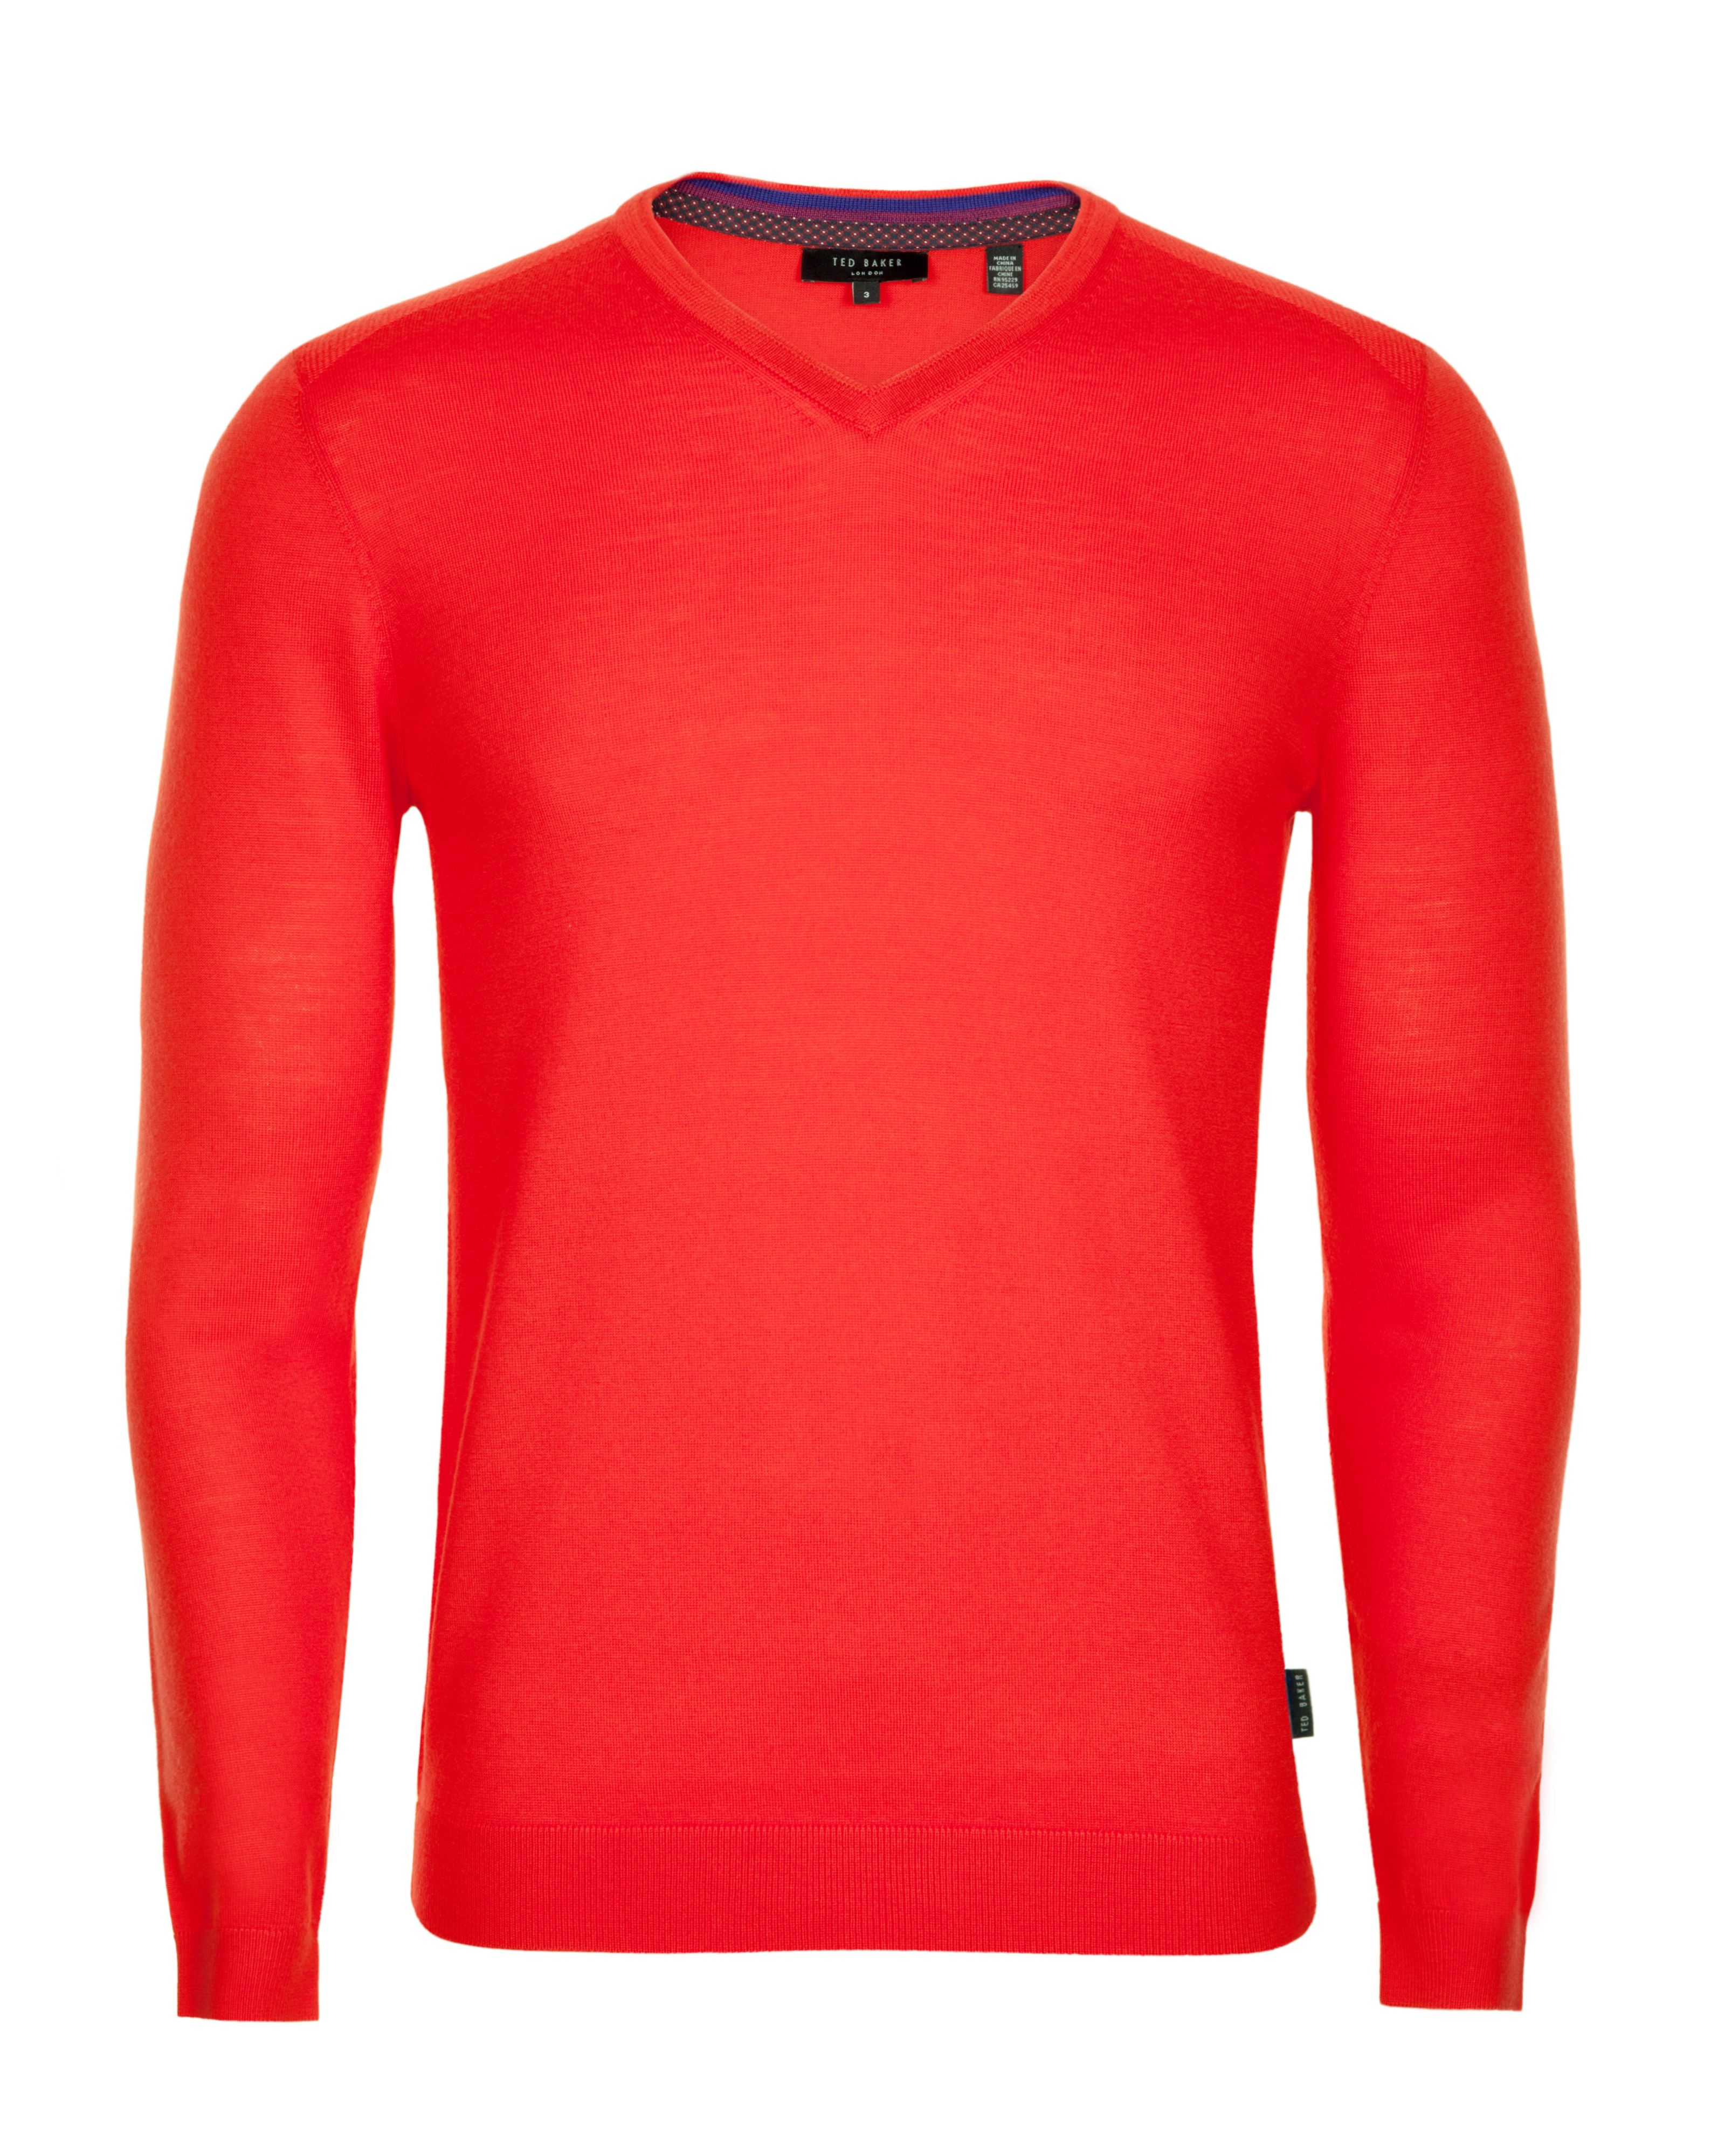 Babel merino v neck jumper